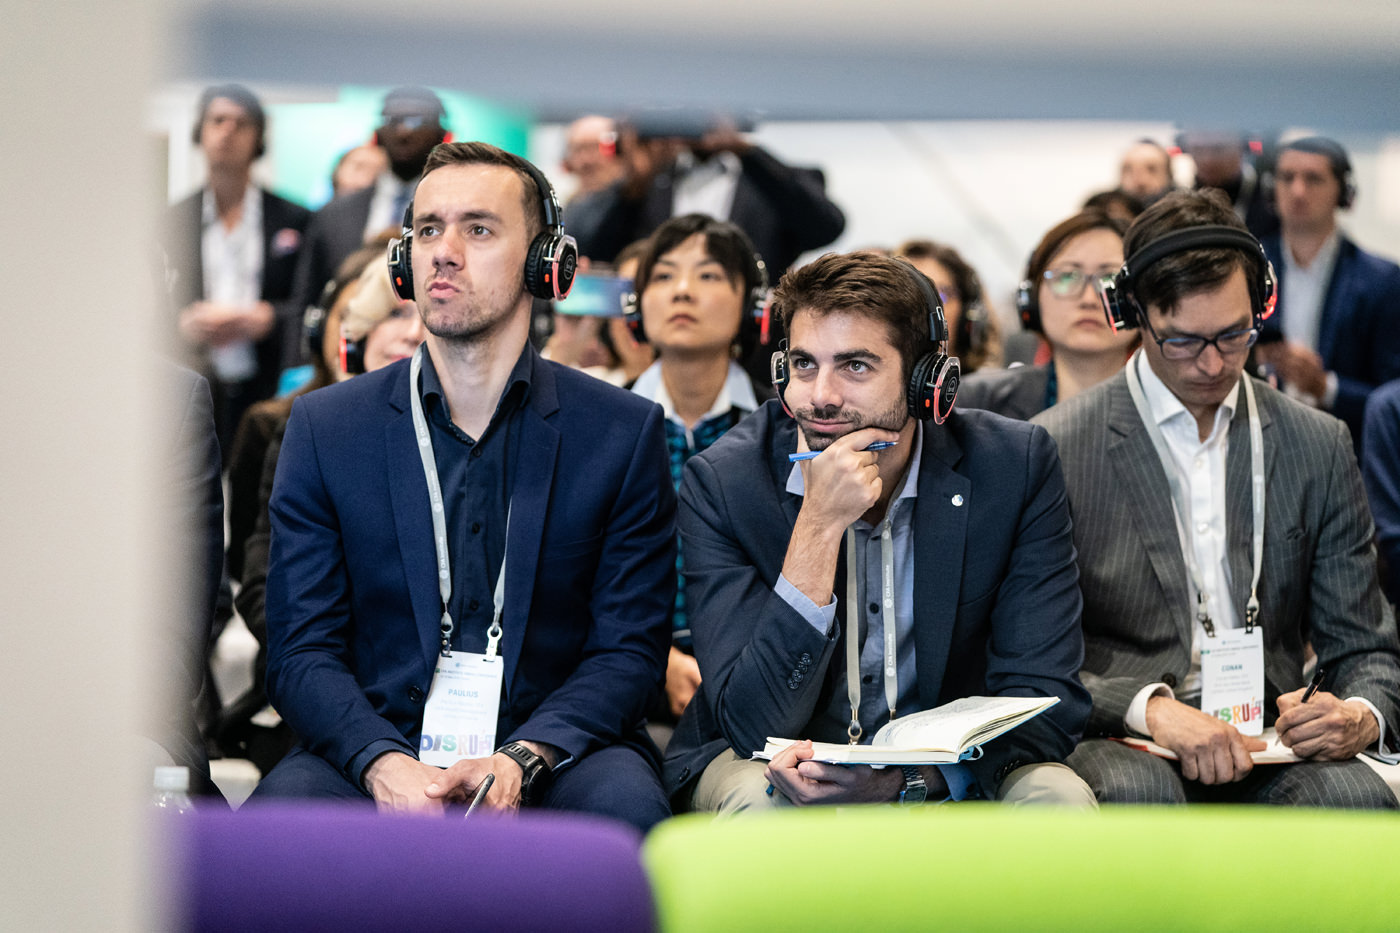 Delegates wearing headphones for Investment Forum at the CFA Conference in the Capital Hall at ExCel London